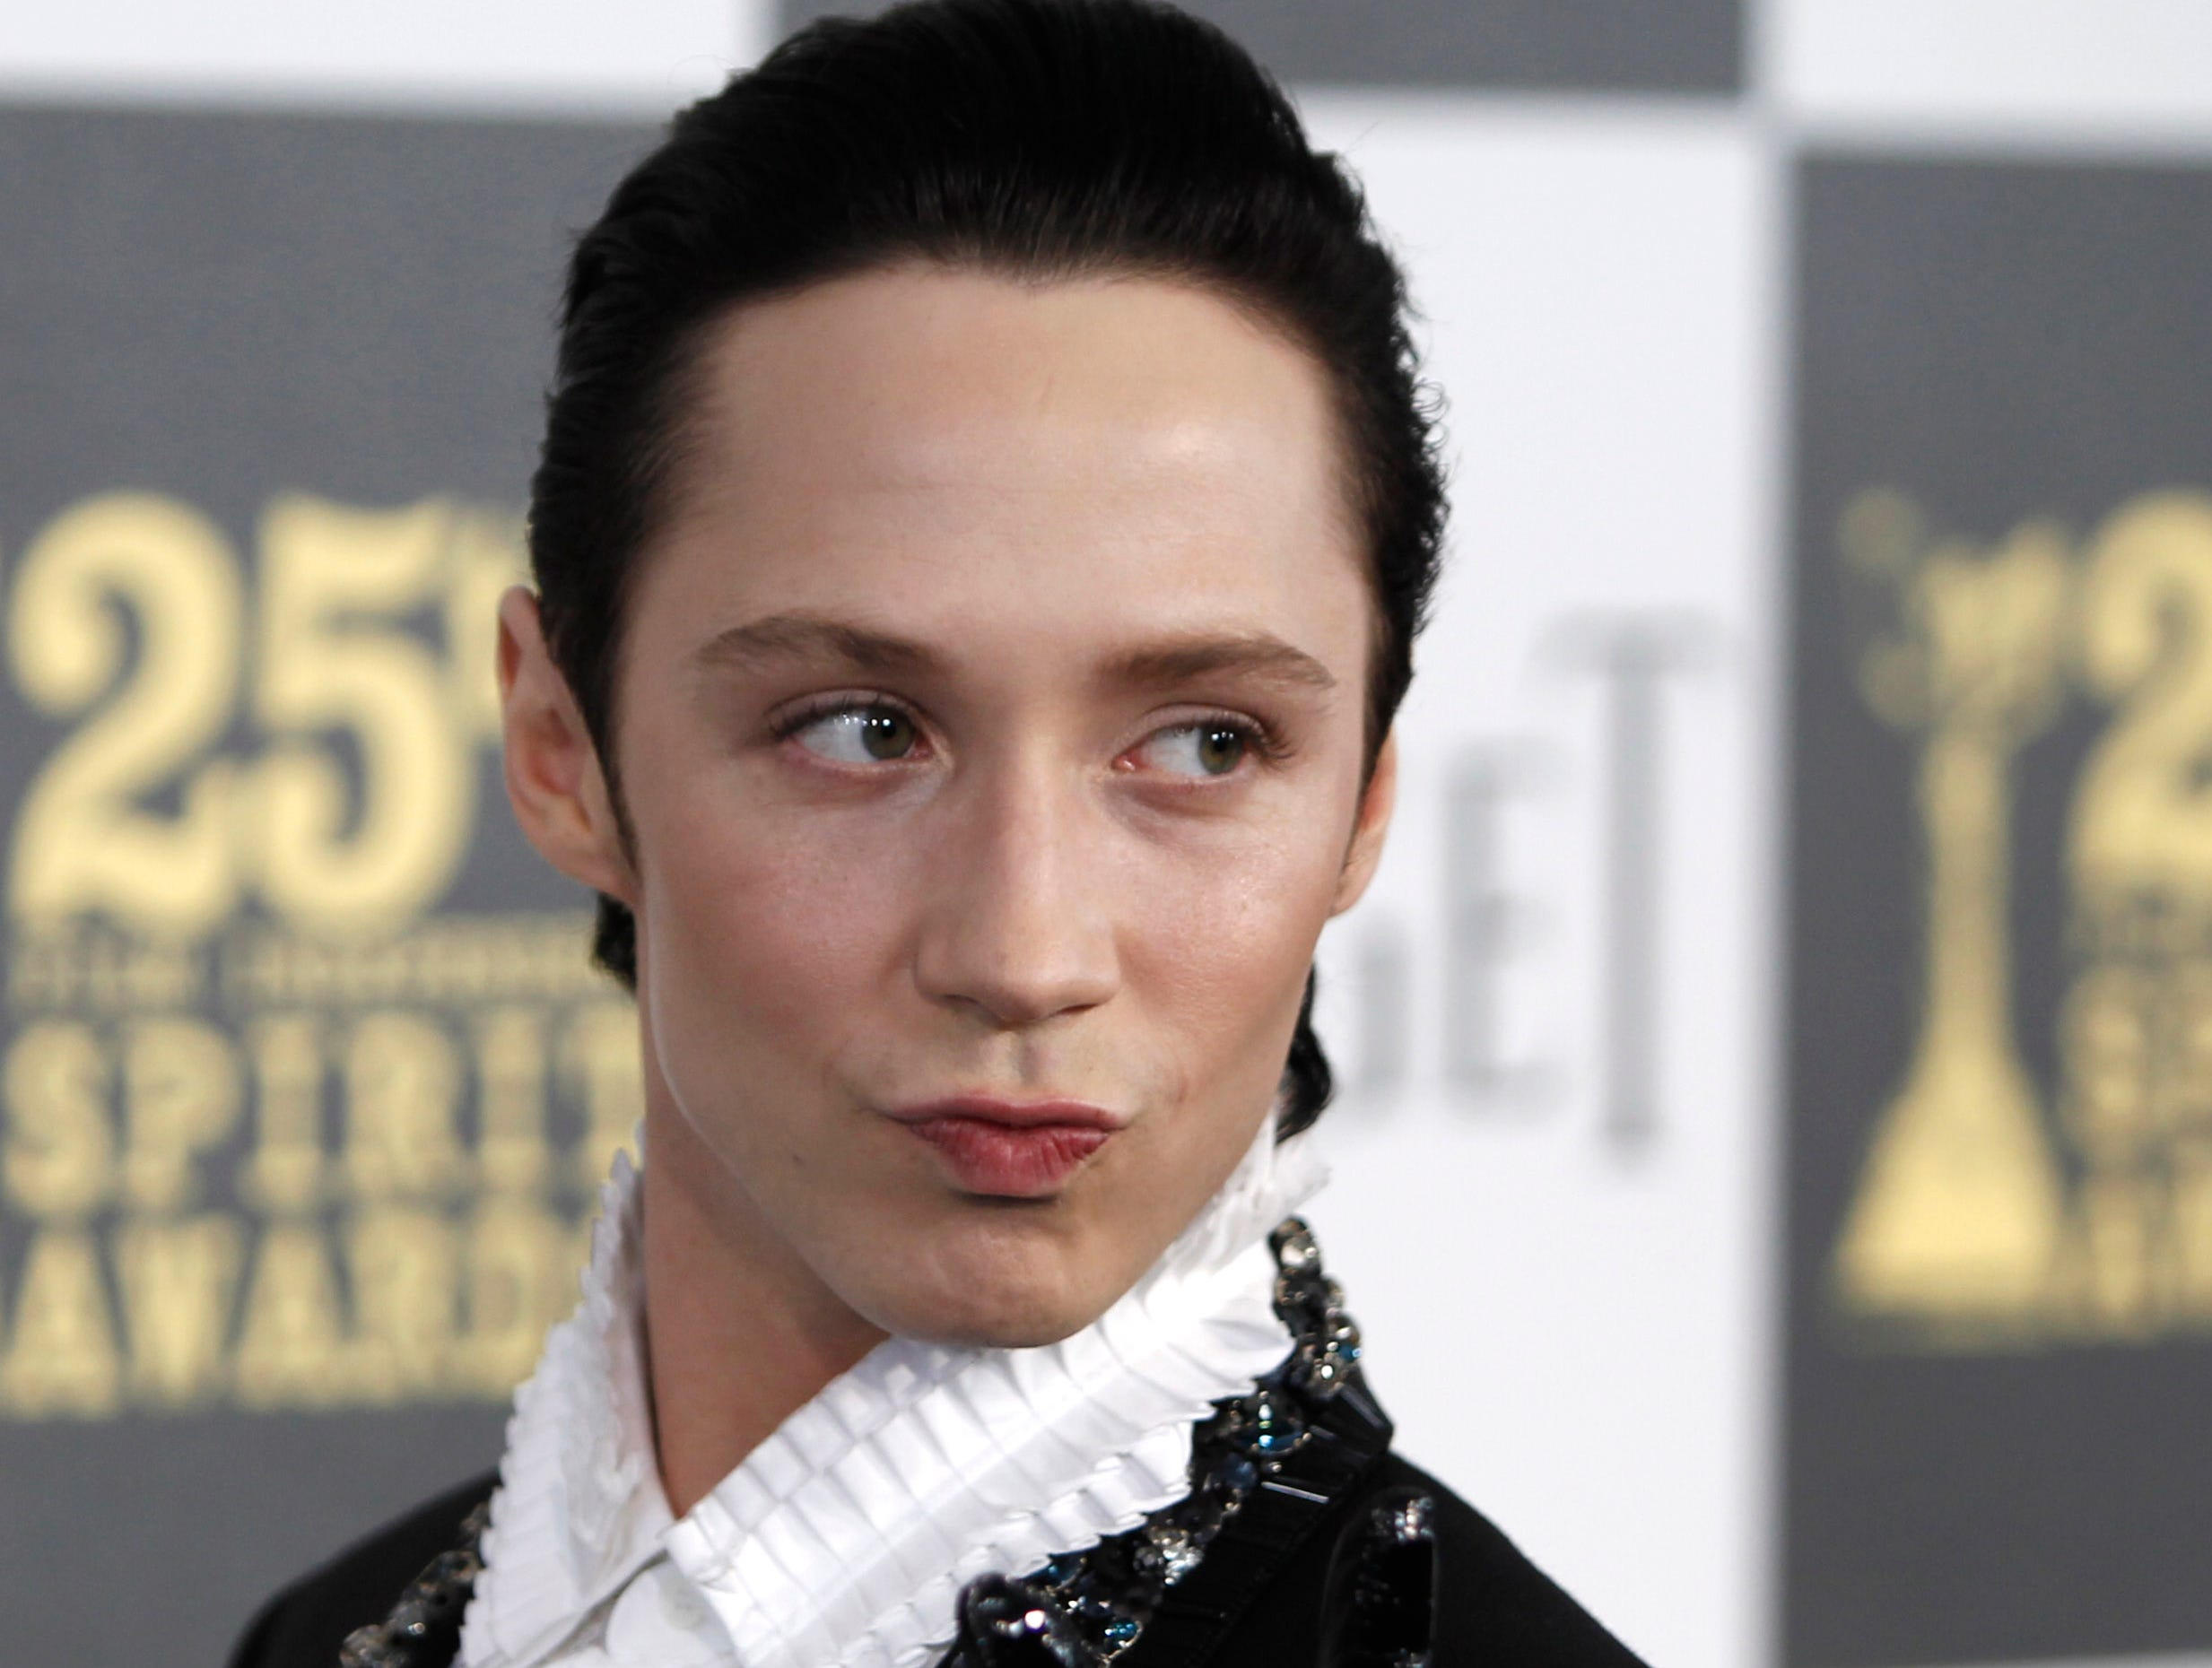 In this March 5, 2010 photo, figure skater Johnny Weir arrives at the Independent Spirit Awards in Los Angeles.